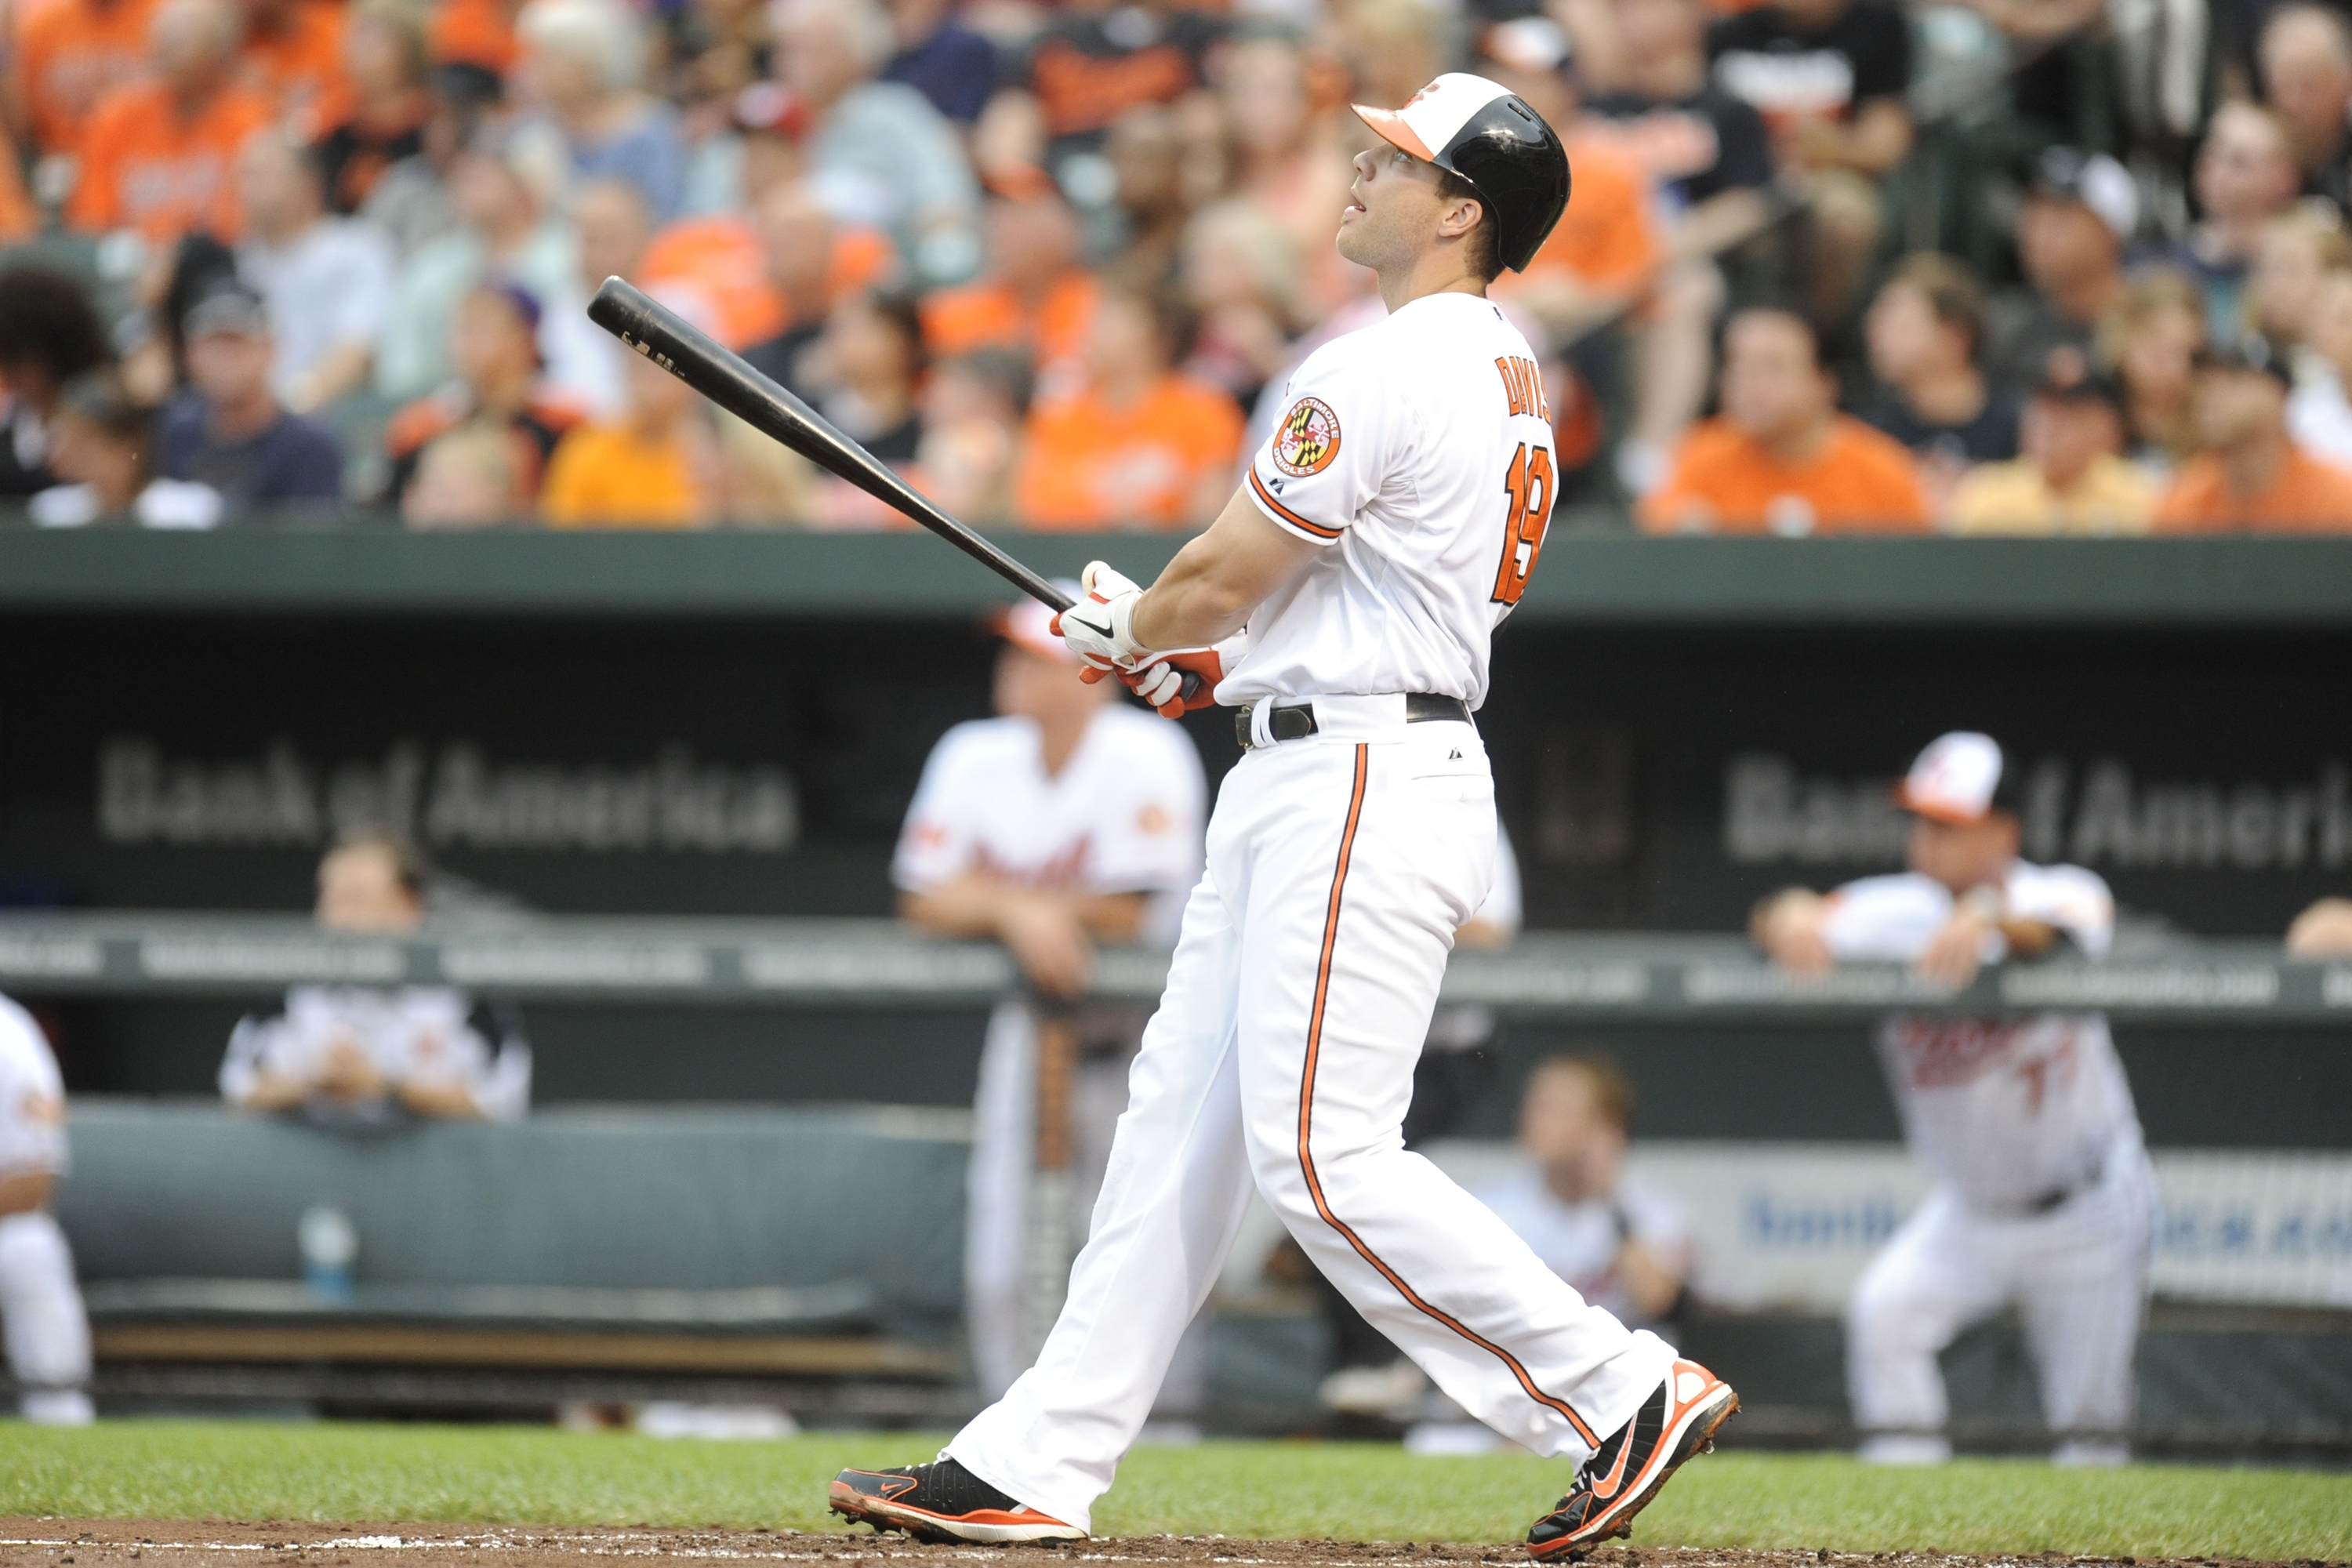 However improbable, Chris Davis is making a strong chase for Roger Maris' home run record. (Getty Images)